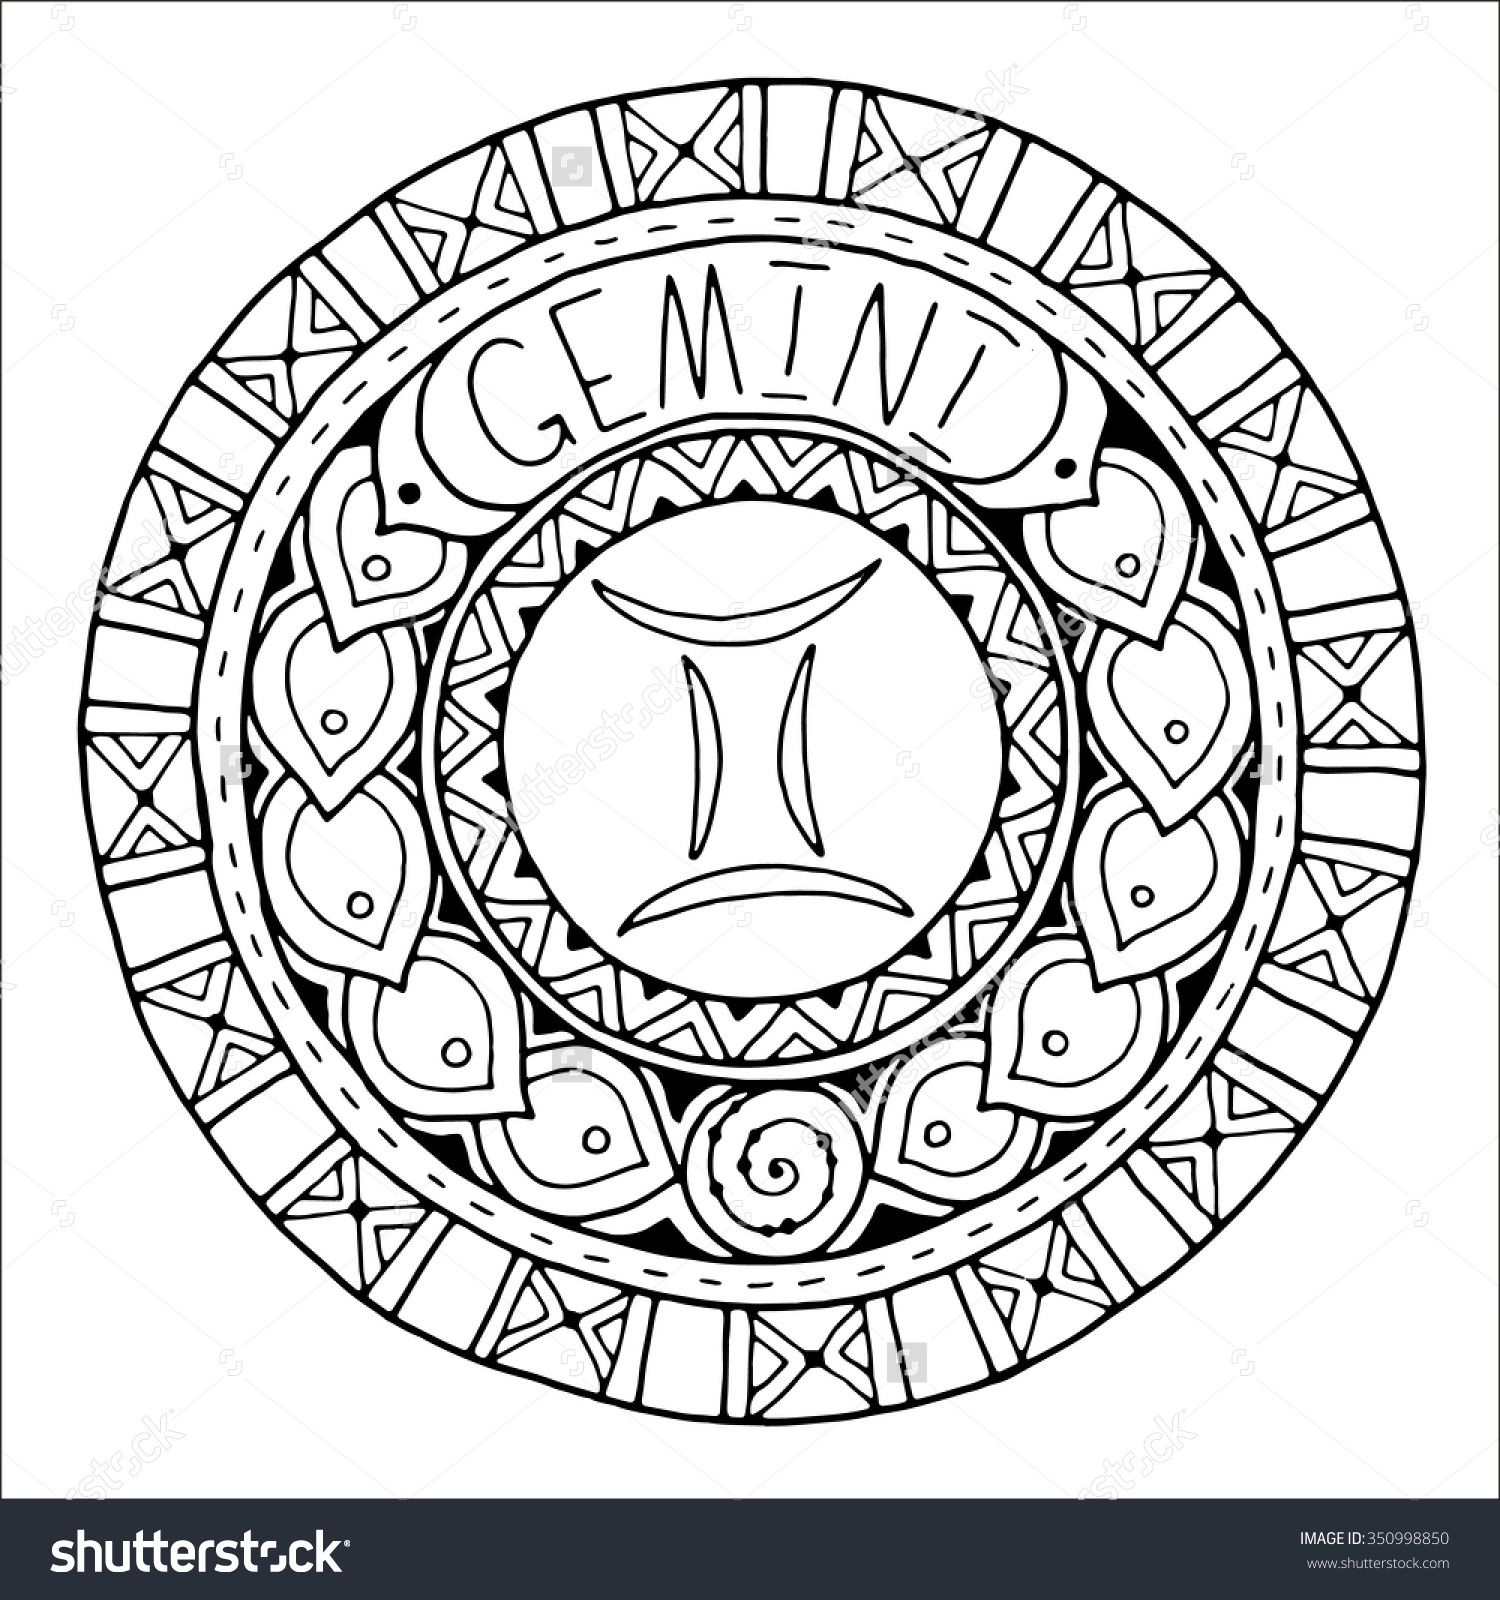 Zodiac Sign of Gemini Shutterstock